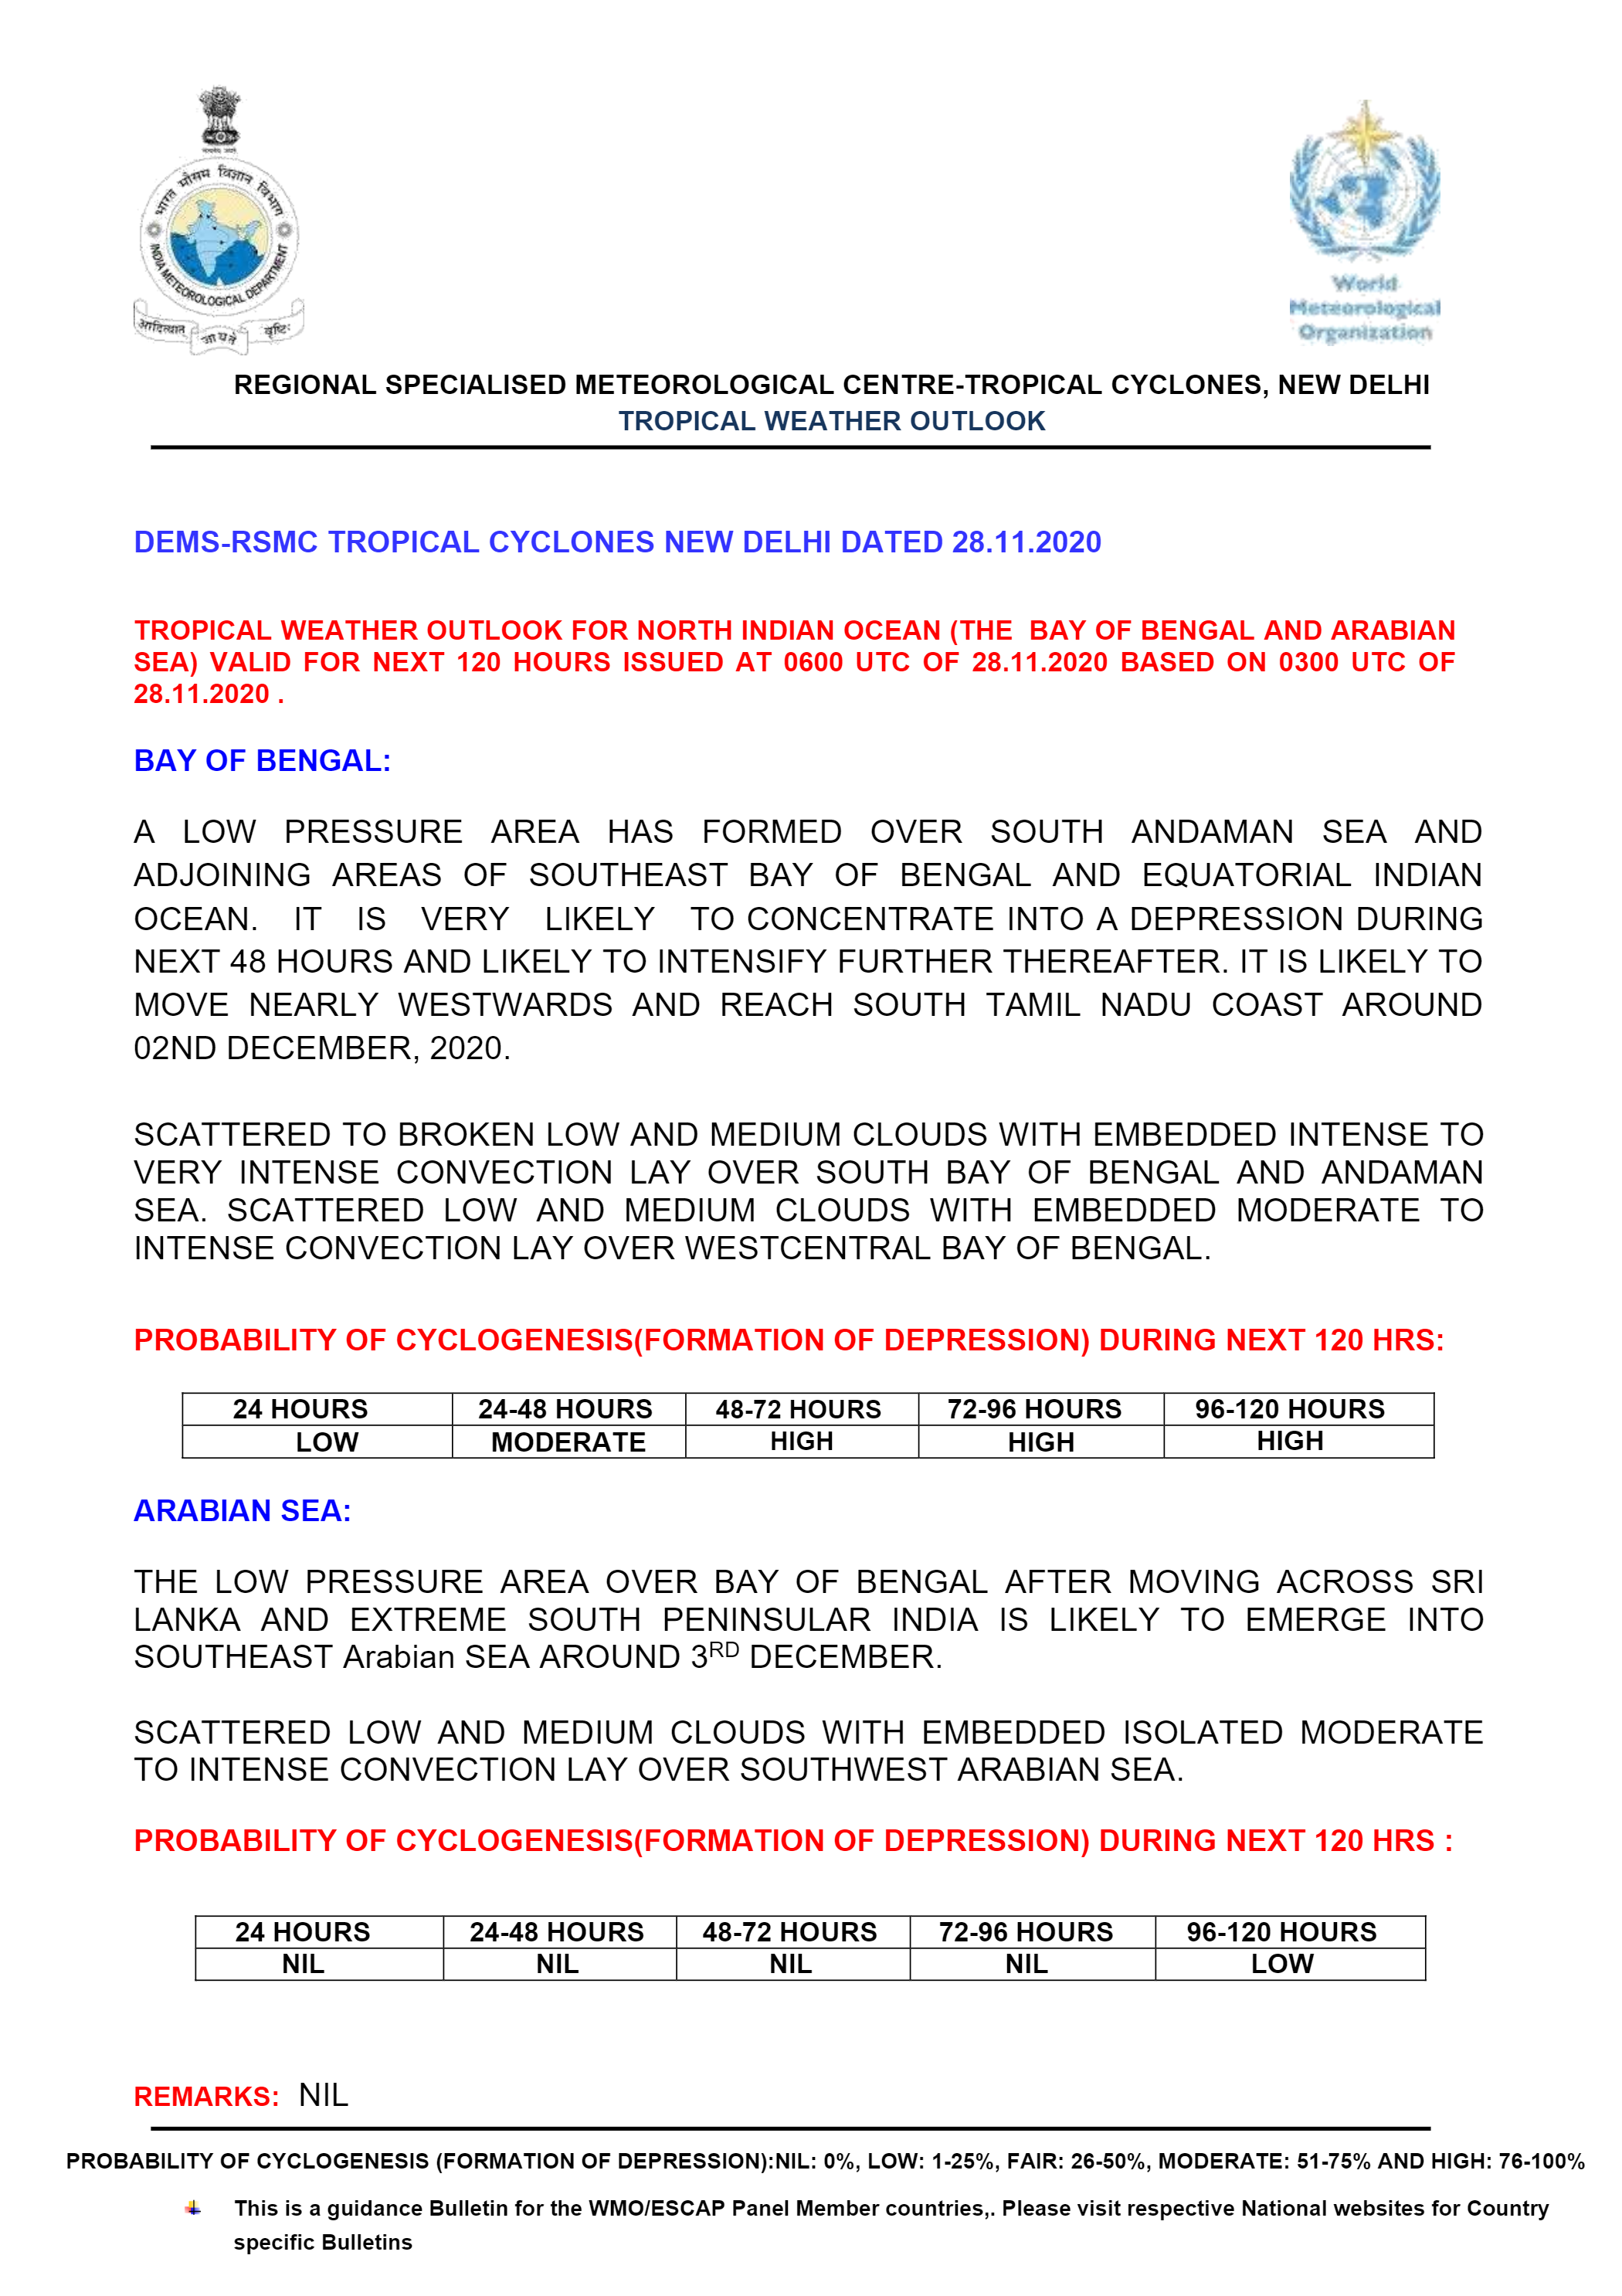 1_Tropical Weather Outlook based on  0300 UTC of 28.11.2020_5fc1fb86a3c5e.png